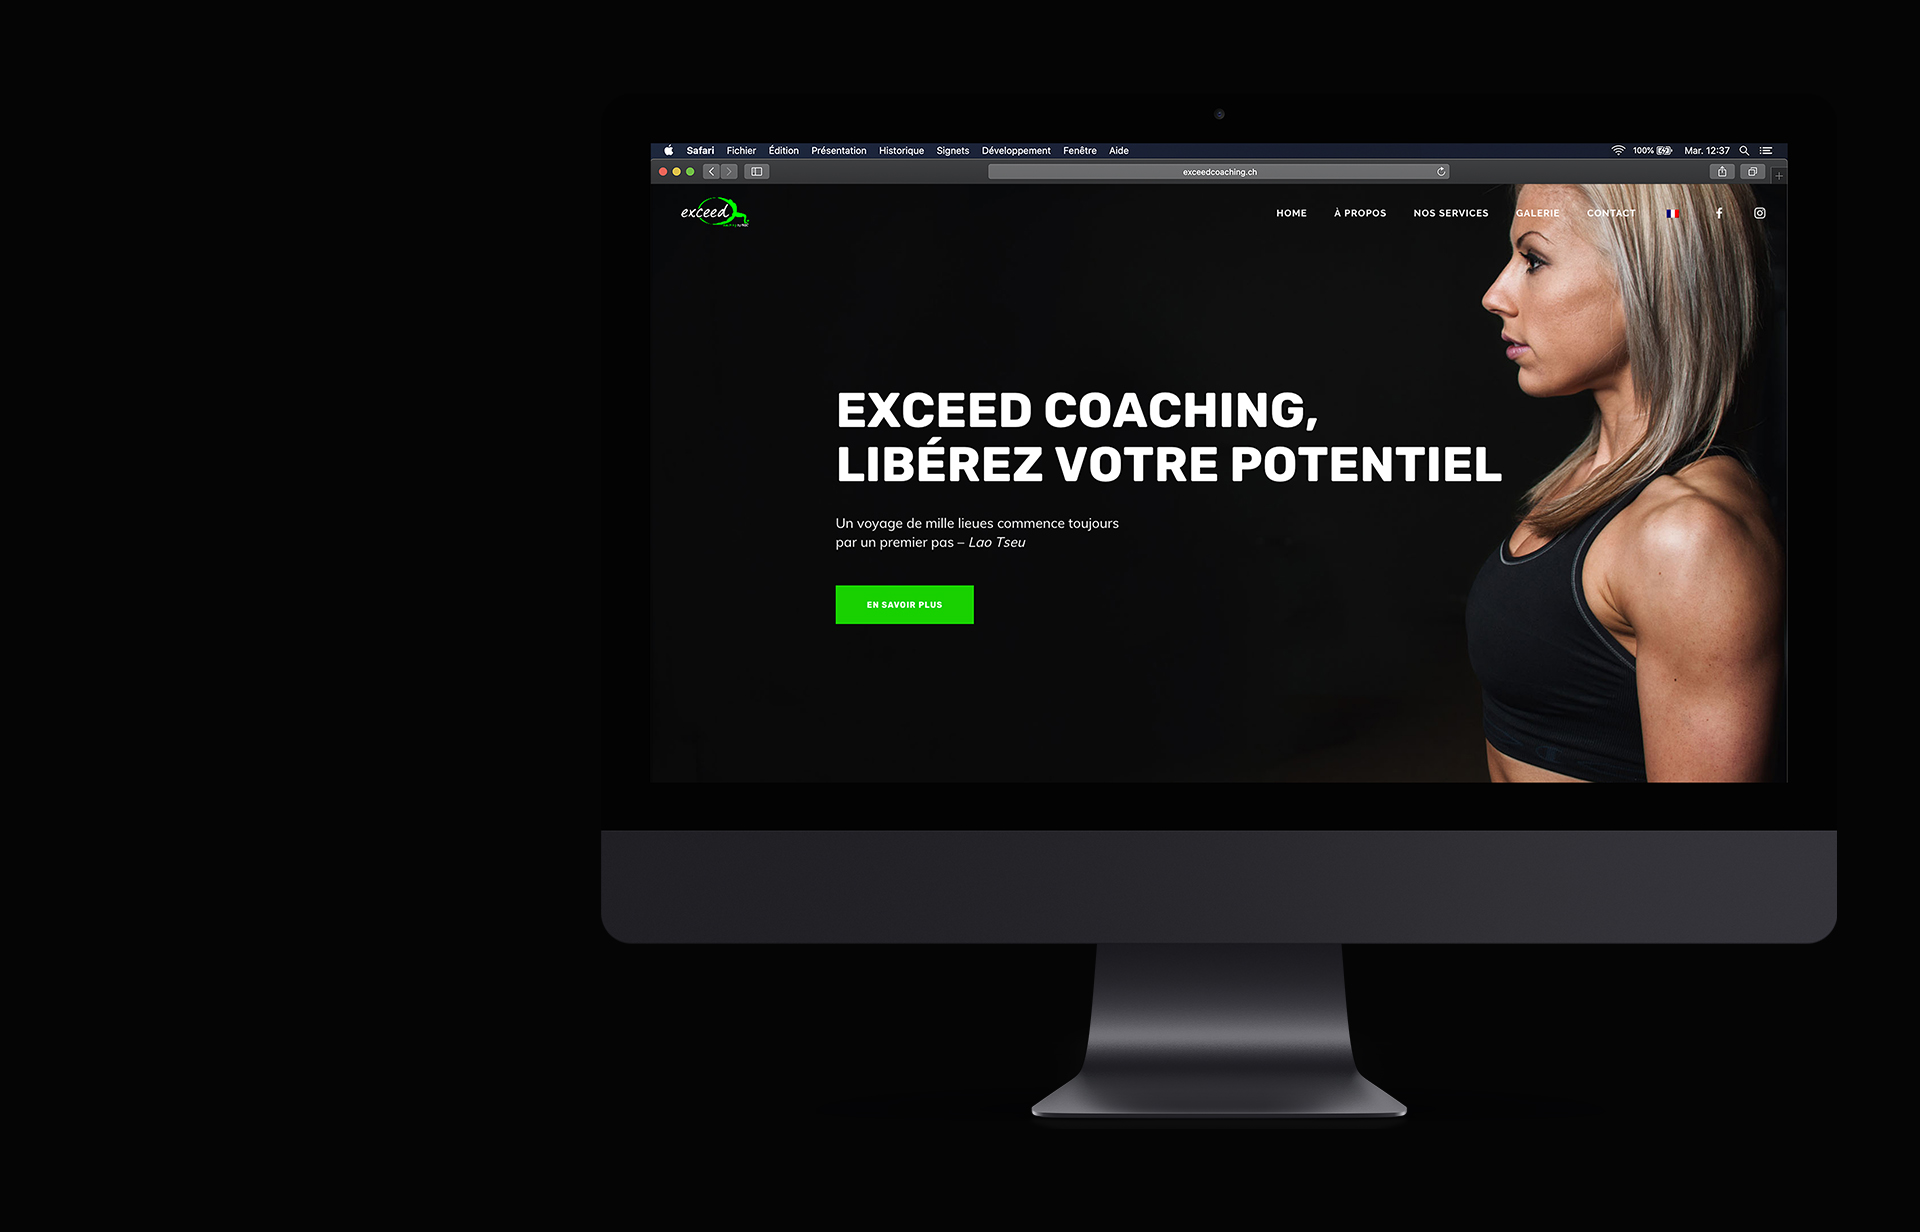 Exceed Coaching